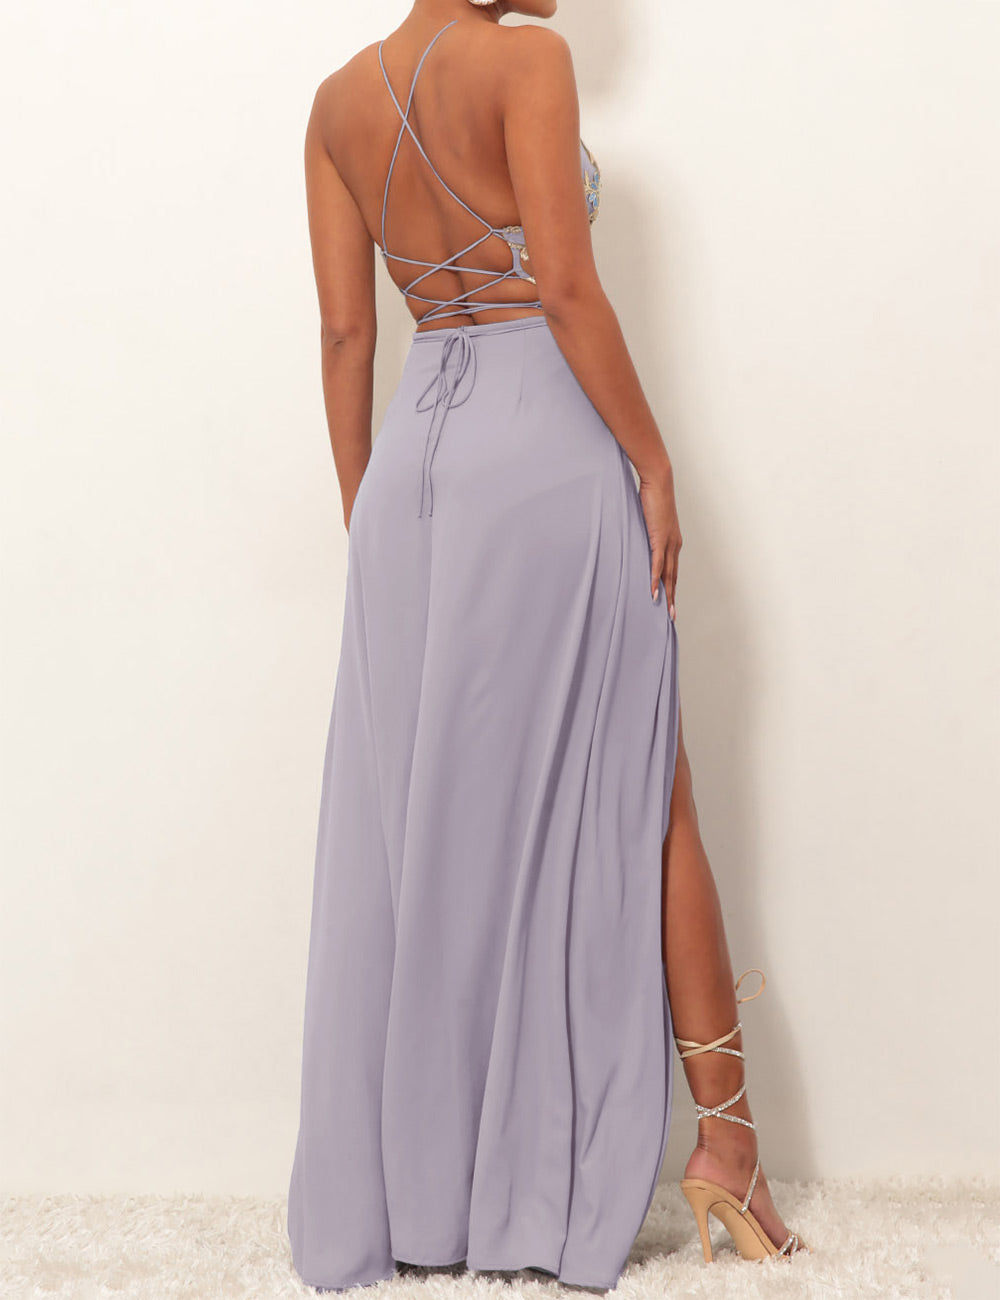 670437501ea Embroidery Slit Lace Up Maxi Dress - Pre Sale - SheShow